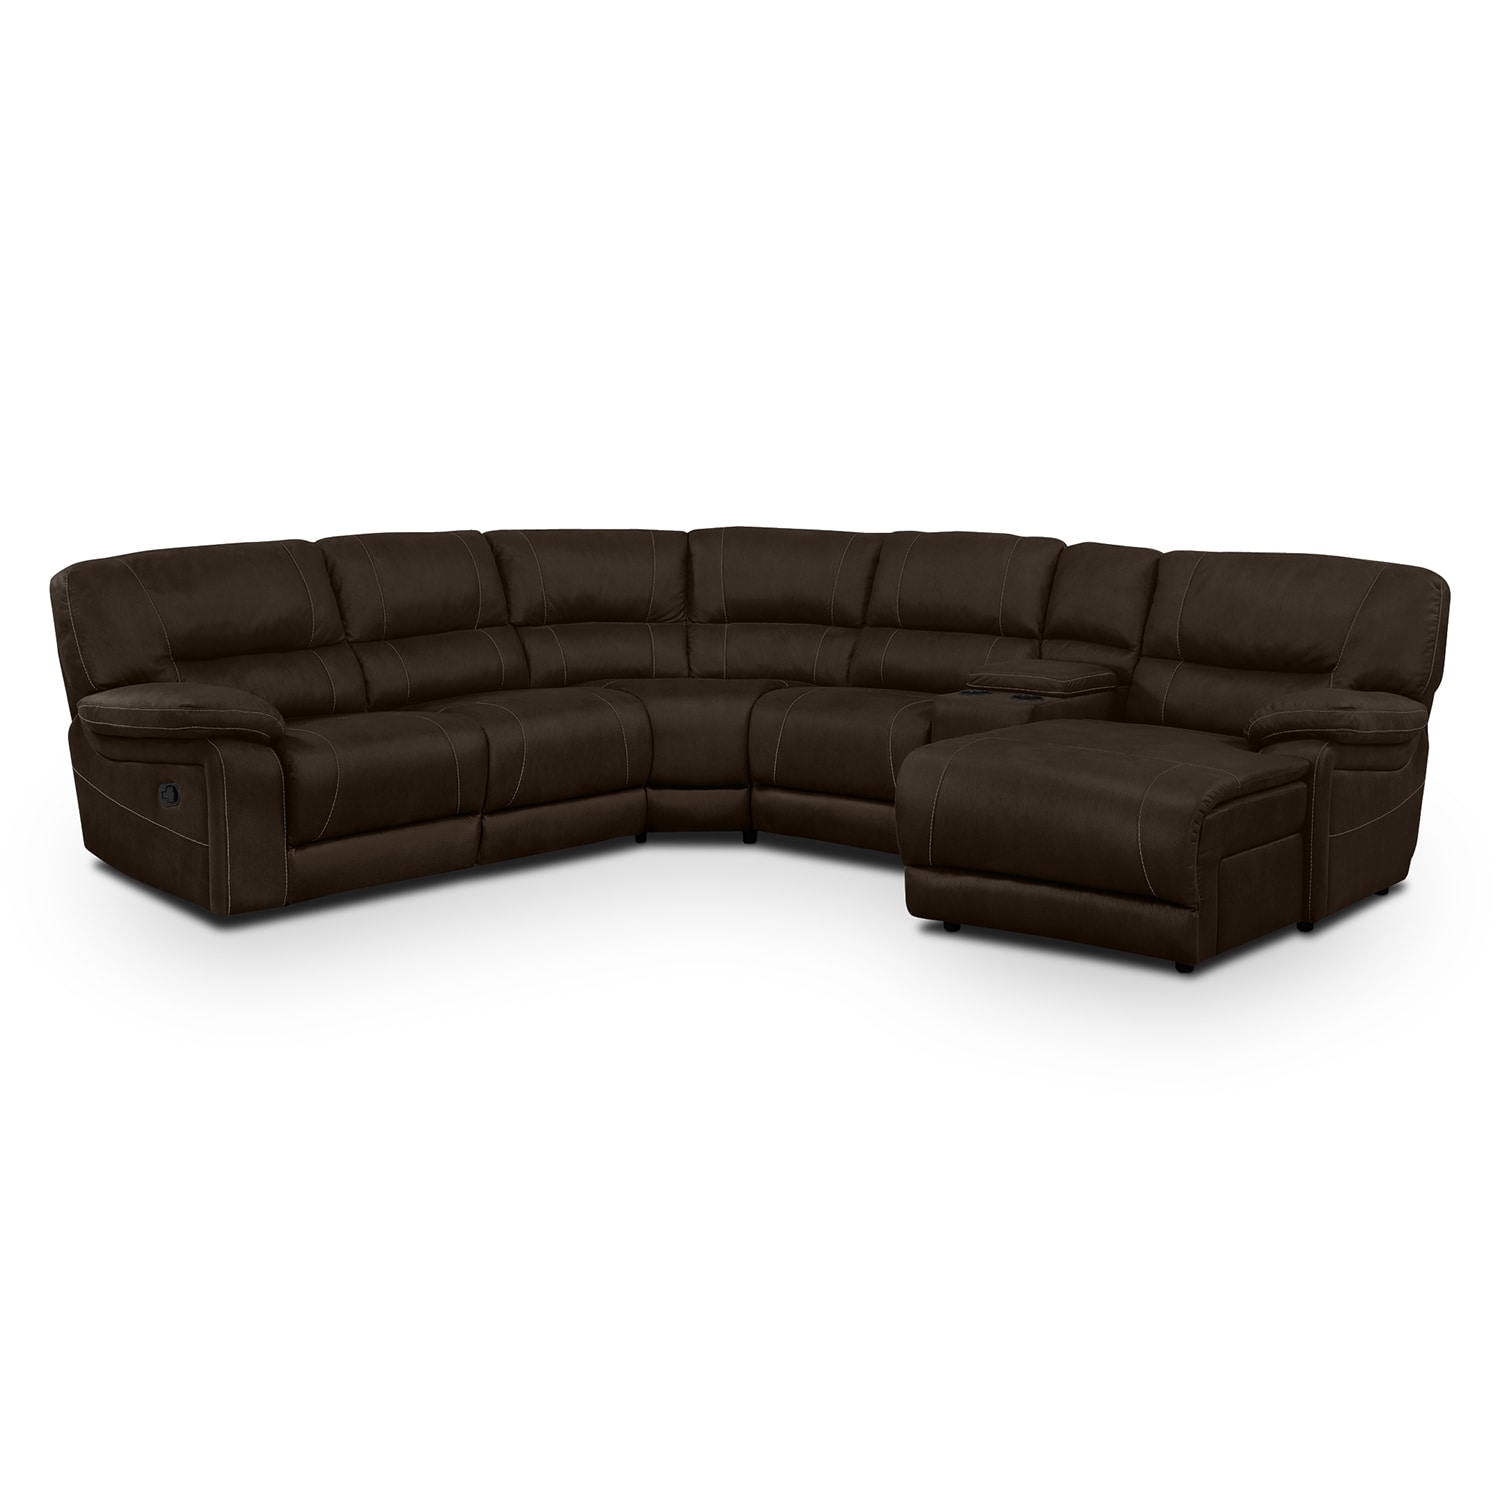 Living Room Furniture - Wyoming 5-Piece Reclining Sectional with Right-Facing Chaise - Saddle Brown